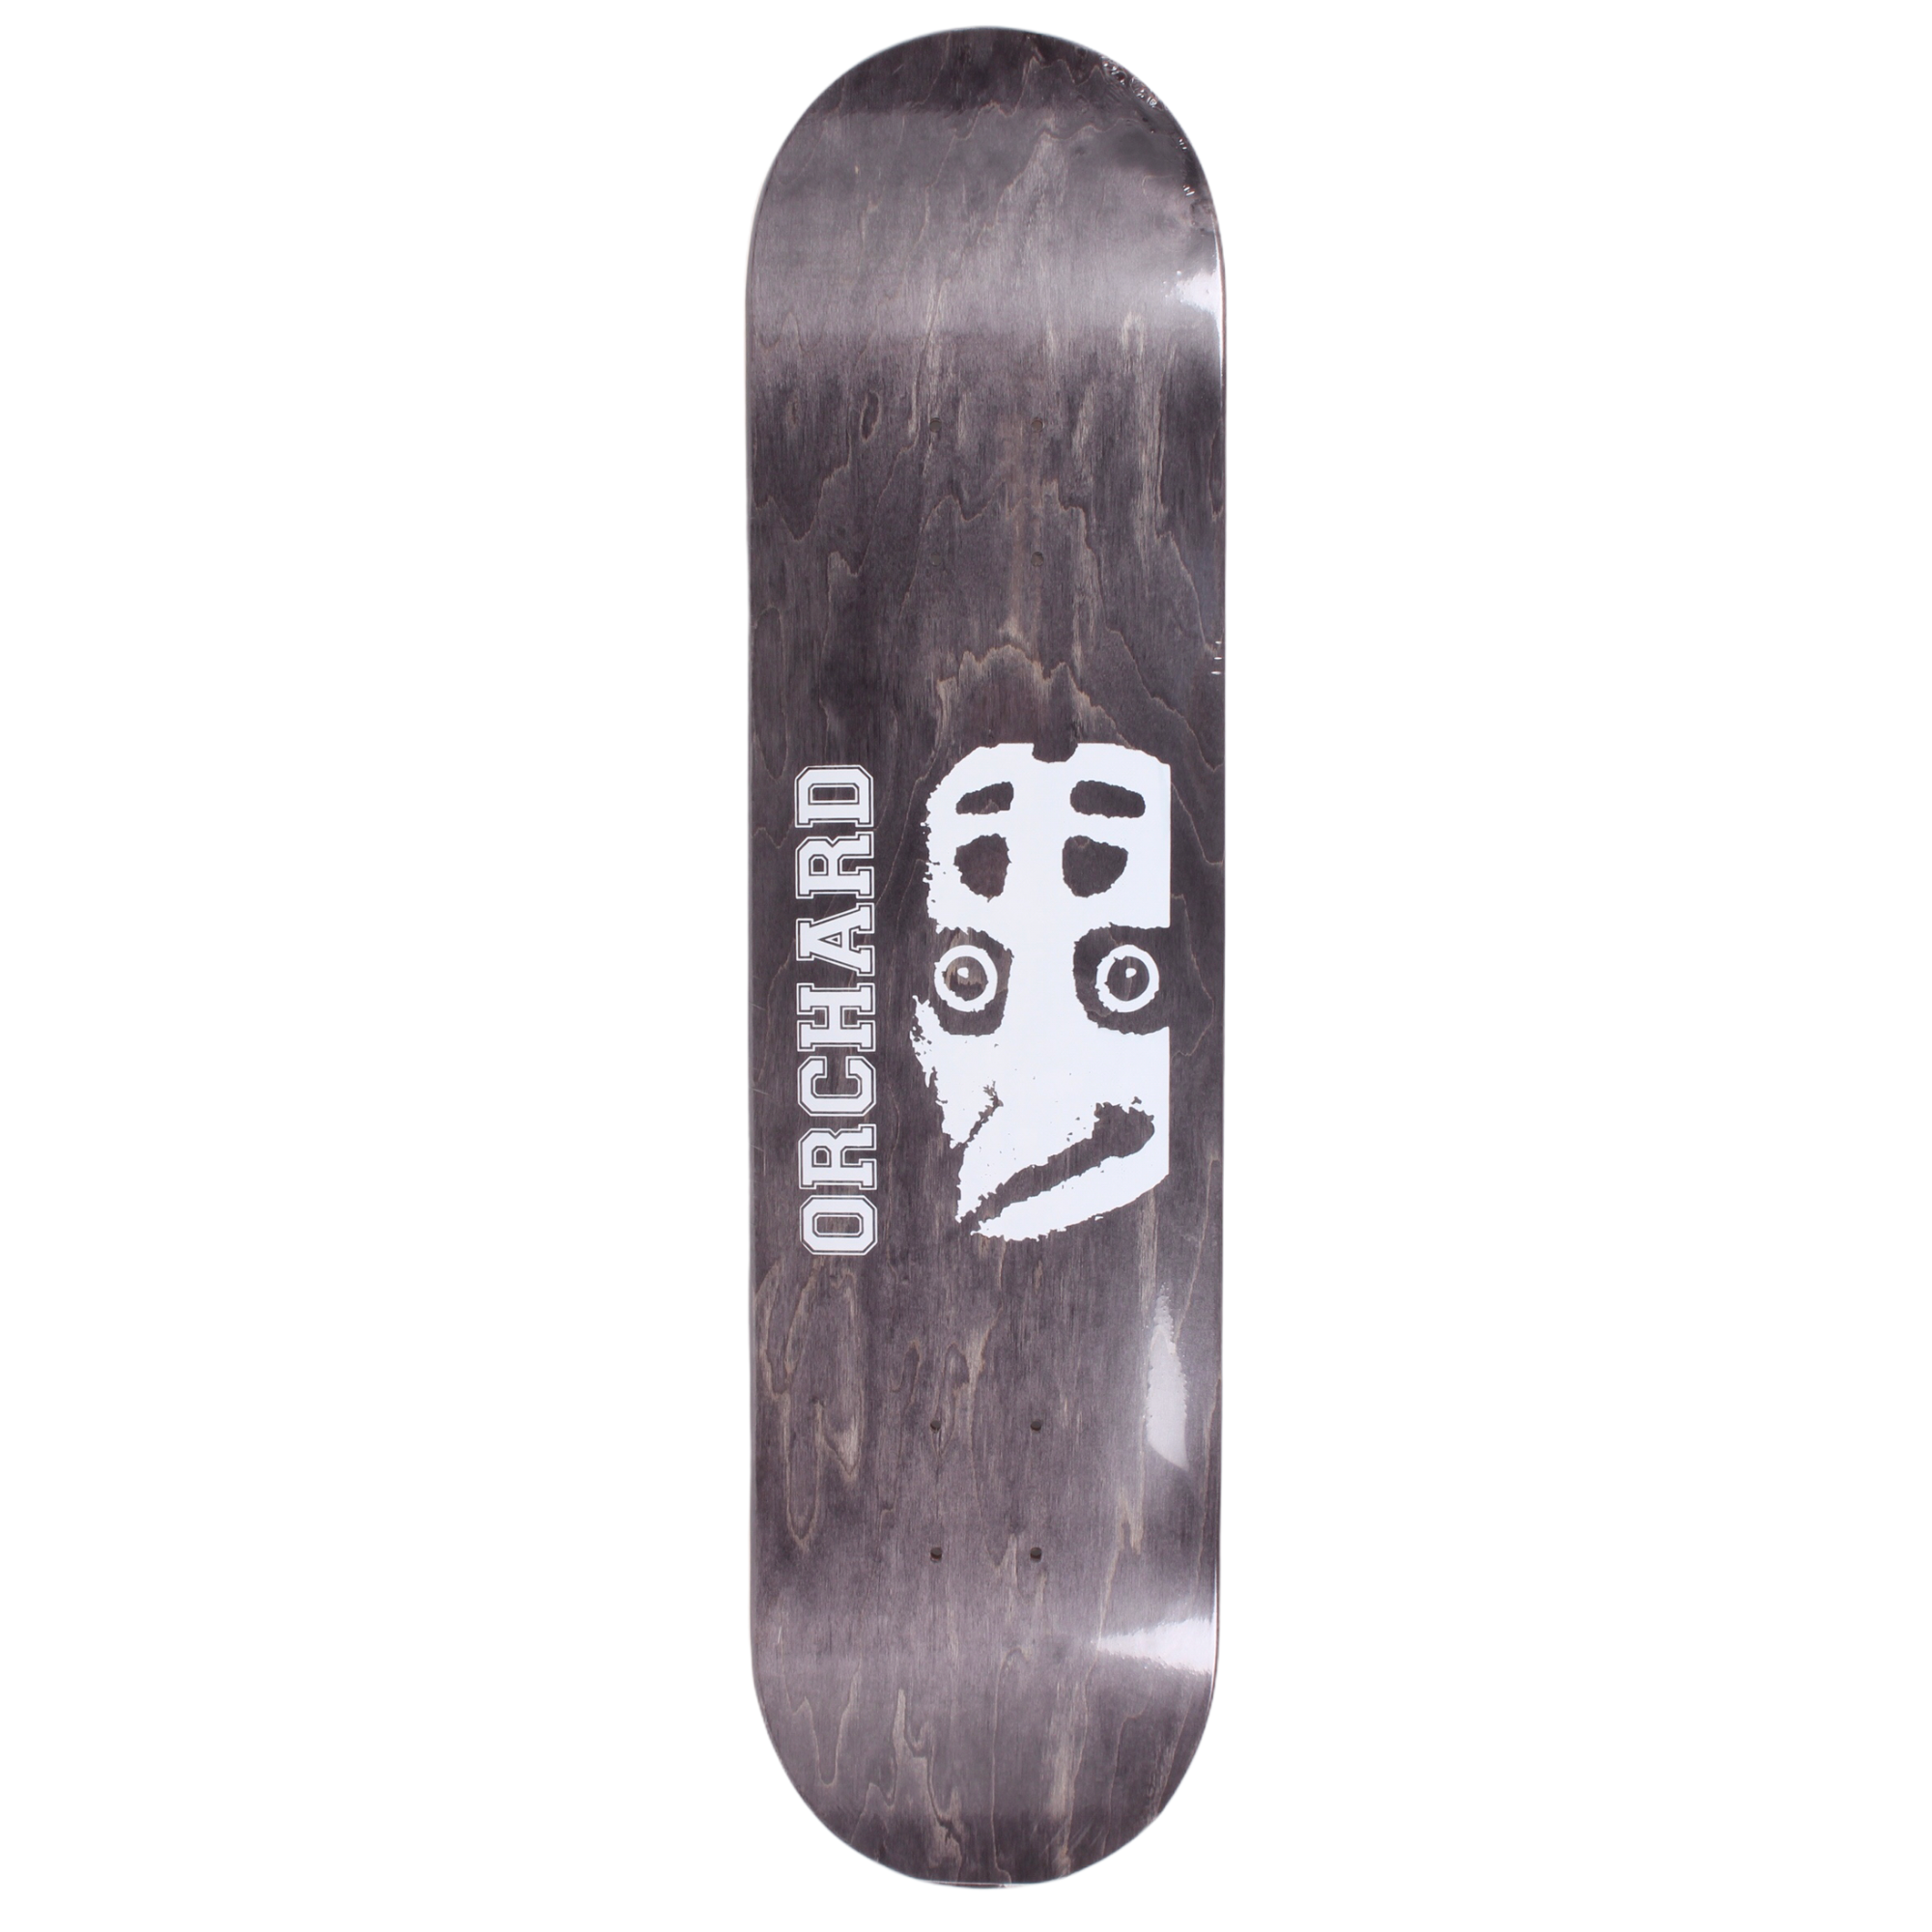 "Orchard Face Off Deck Grey/White 8.0"" M1"